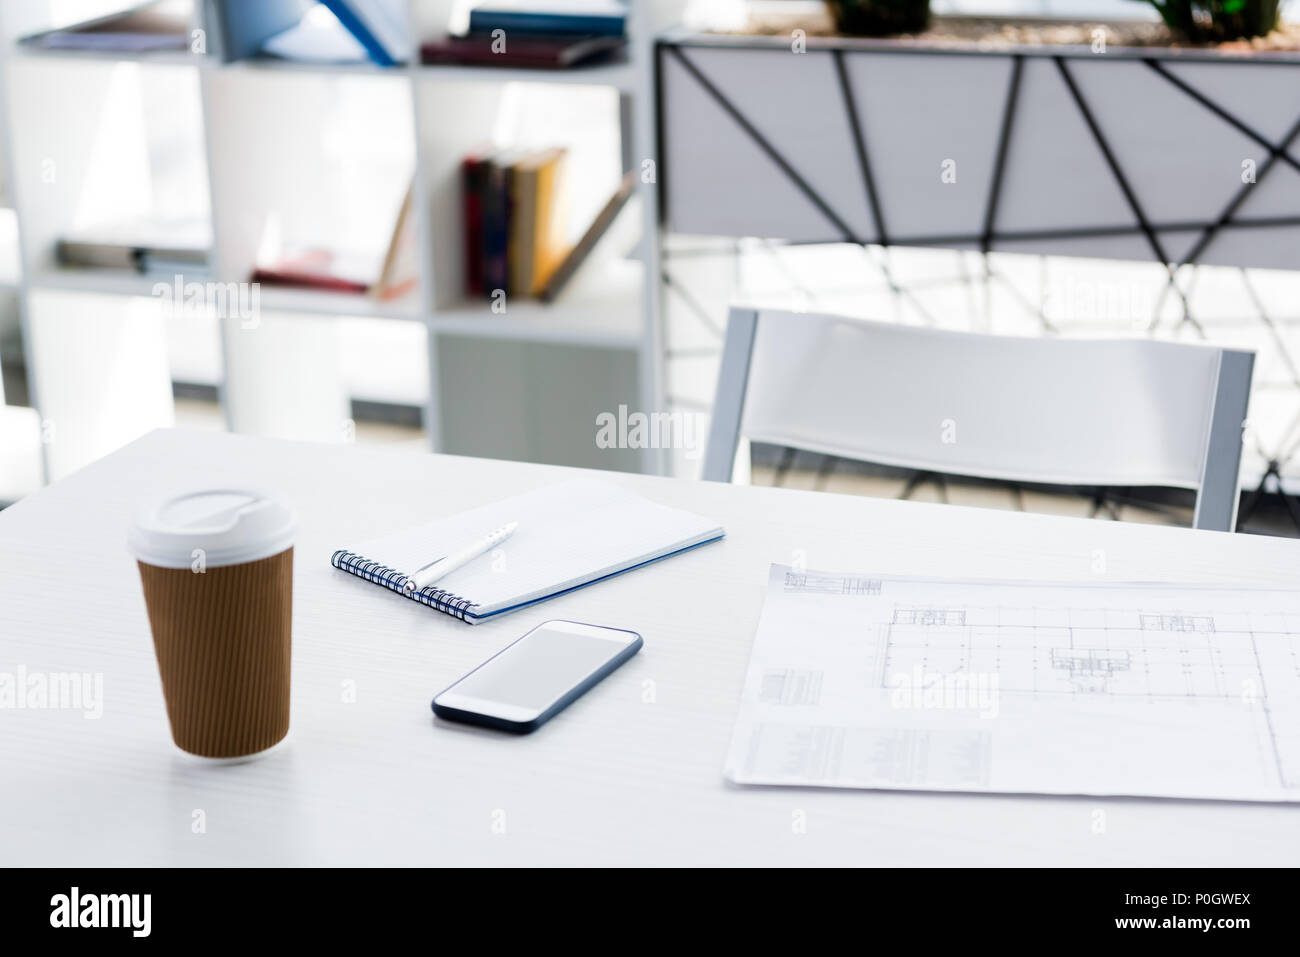 Empty workplace with blueprint, notepad, smartphone and disposable coffee cup in modern office - Stock Image